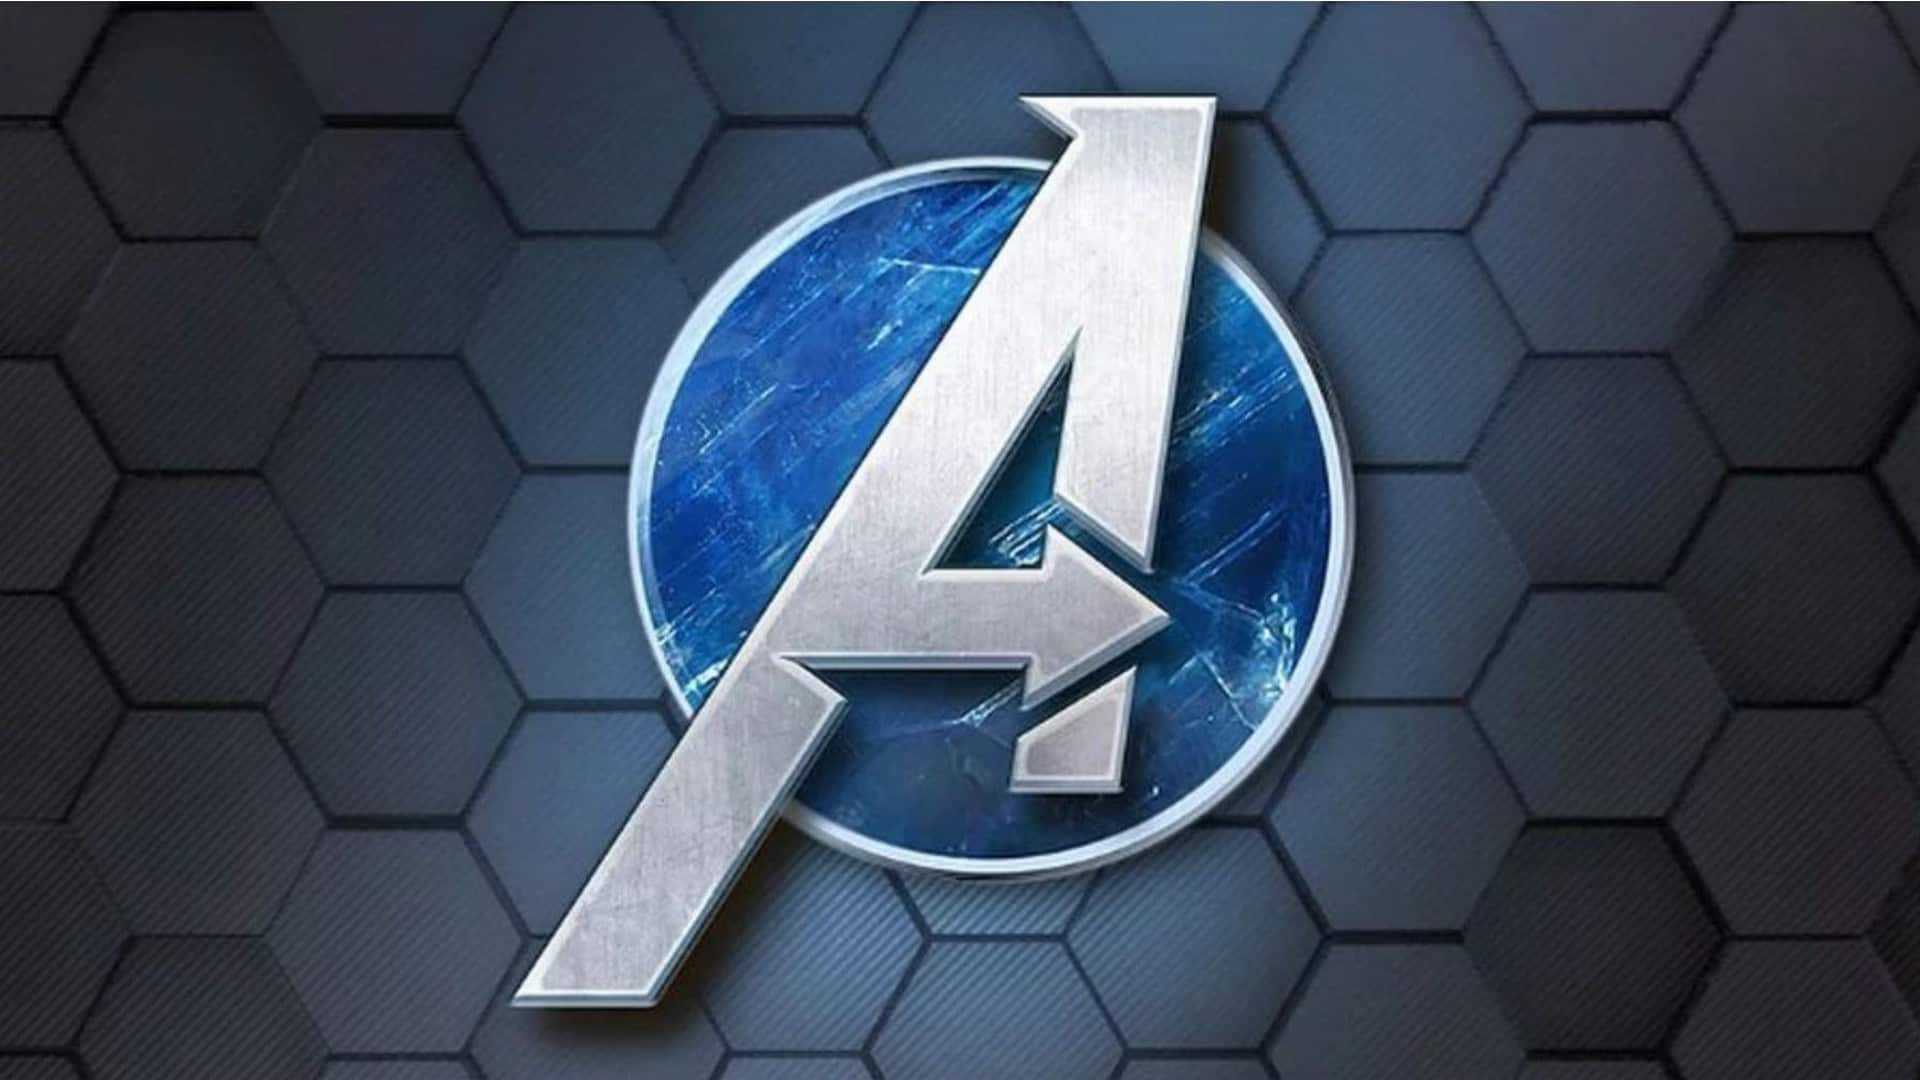 Square Enix And Marvel Entertainment Reveal Marvel's Avengers